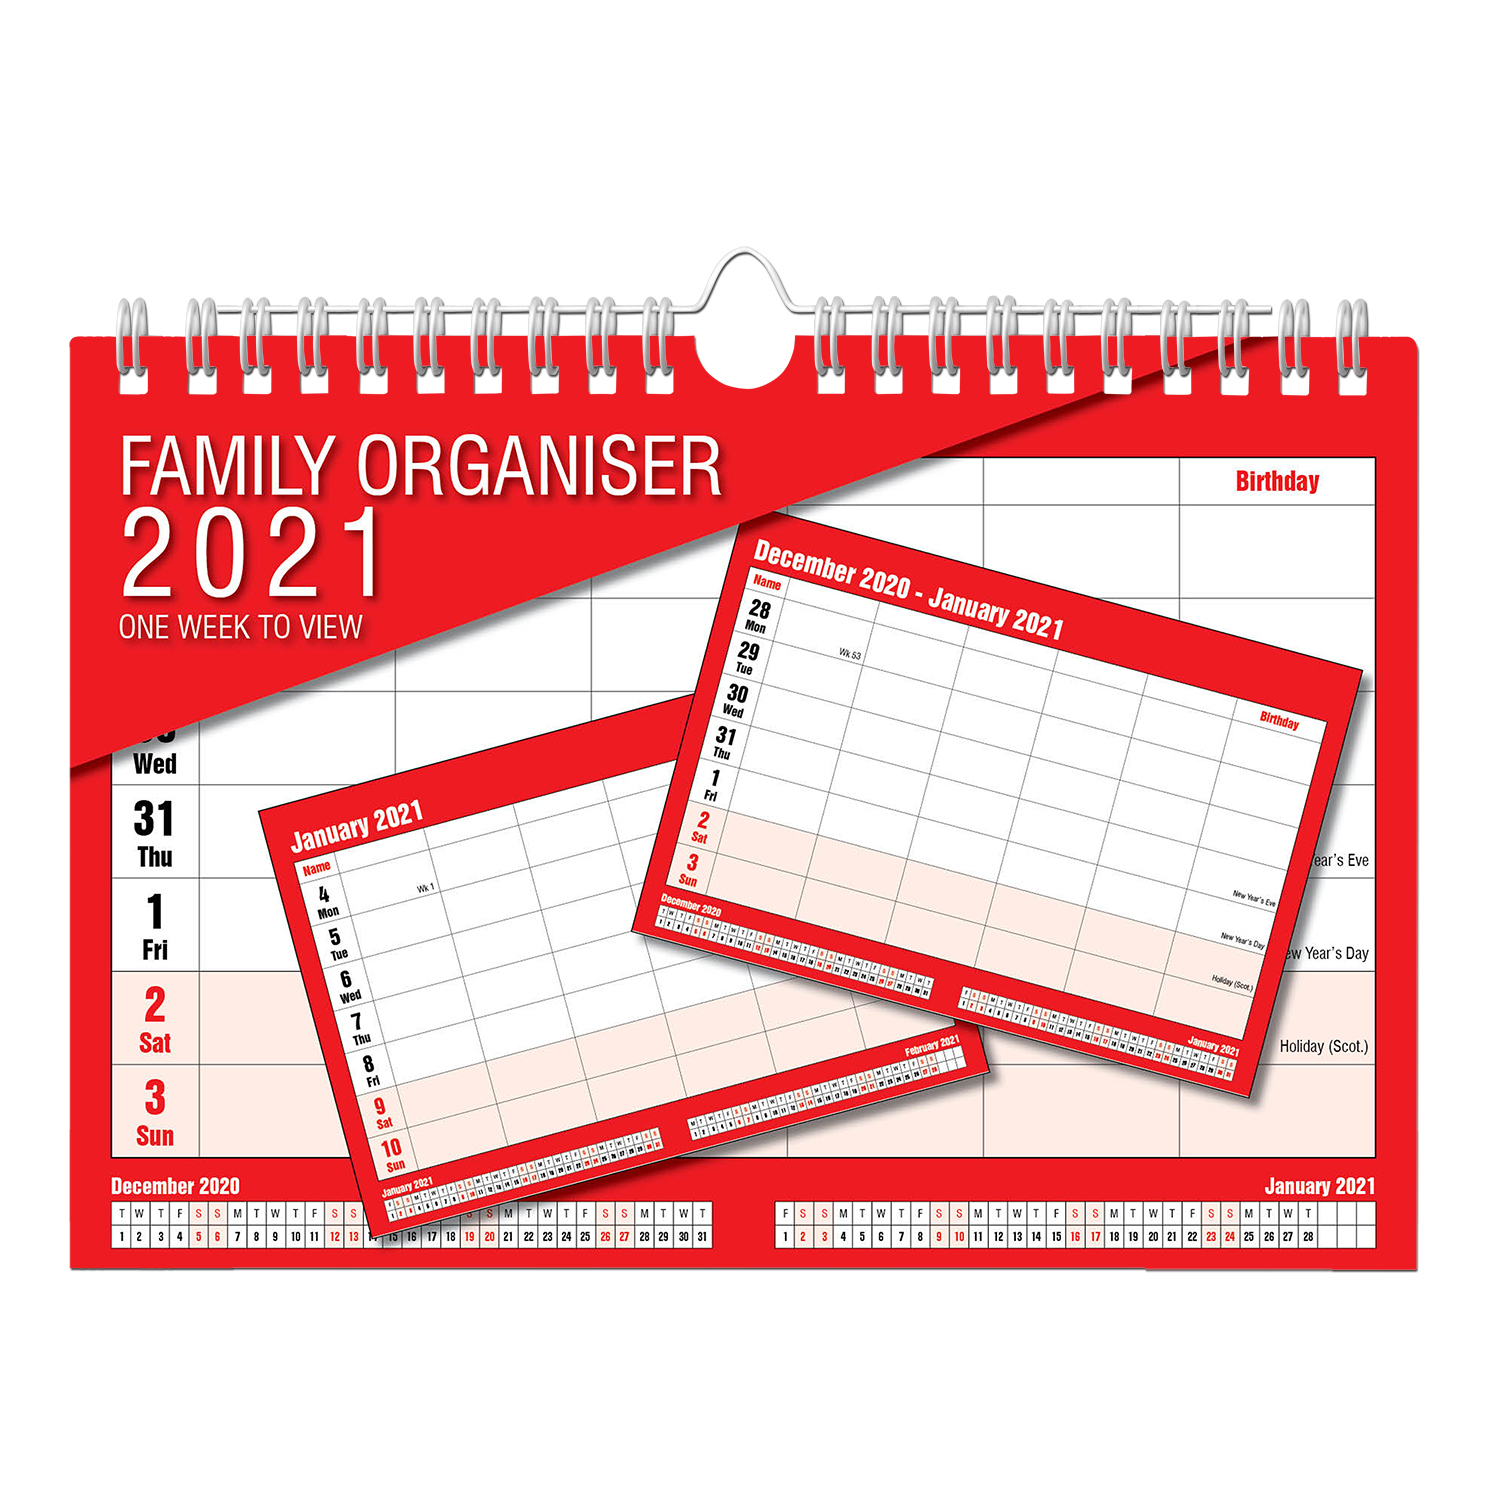 2021 Calendar Family Organiser One Week To View Clarisworld